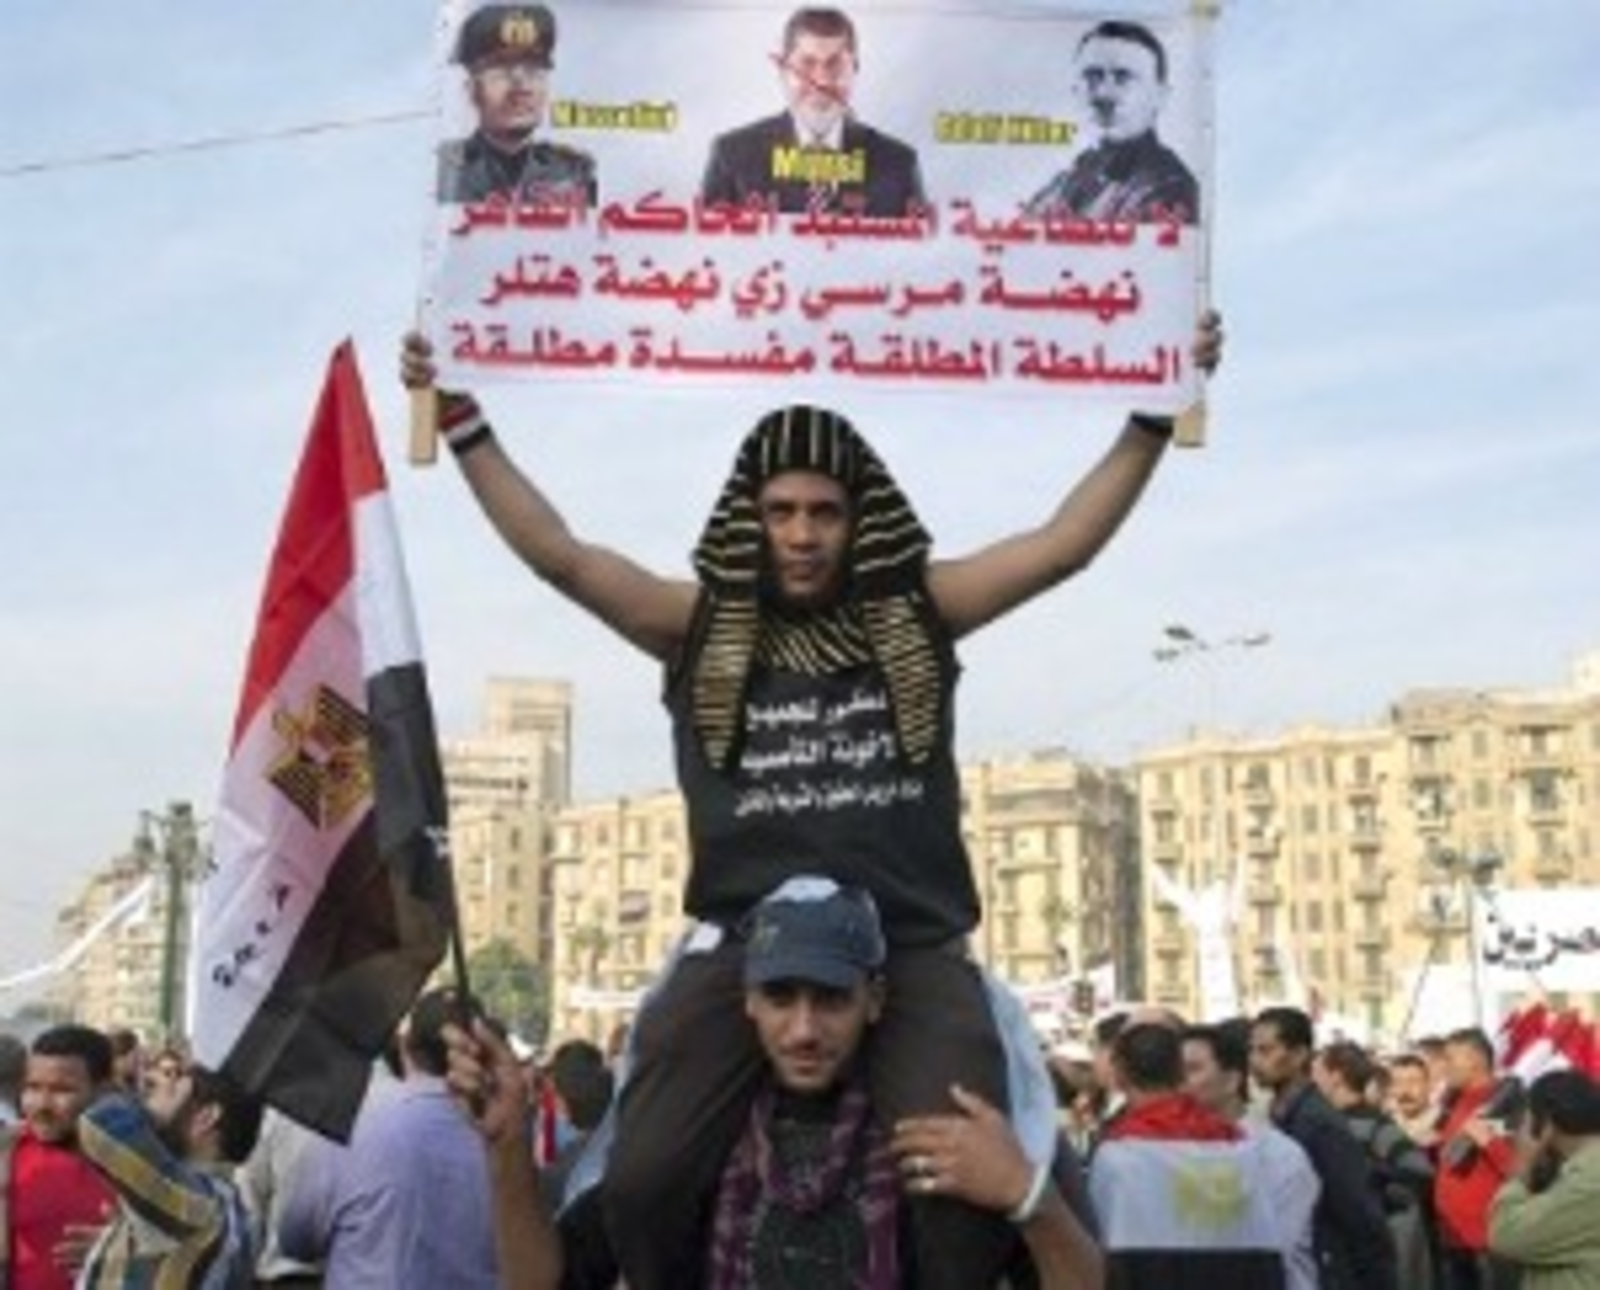 20130206_photo_article_Egyptians_disillusioned_by_the_end_of_the_Arab_spring